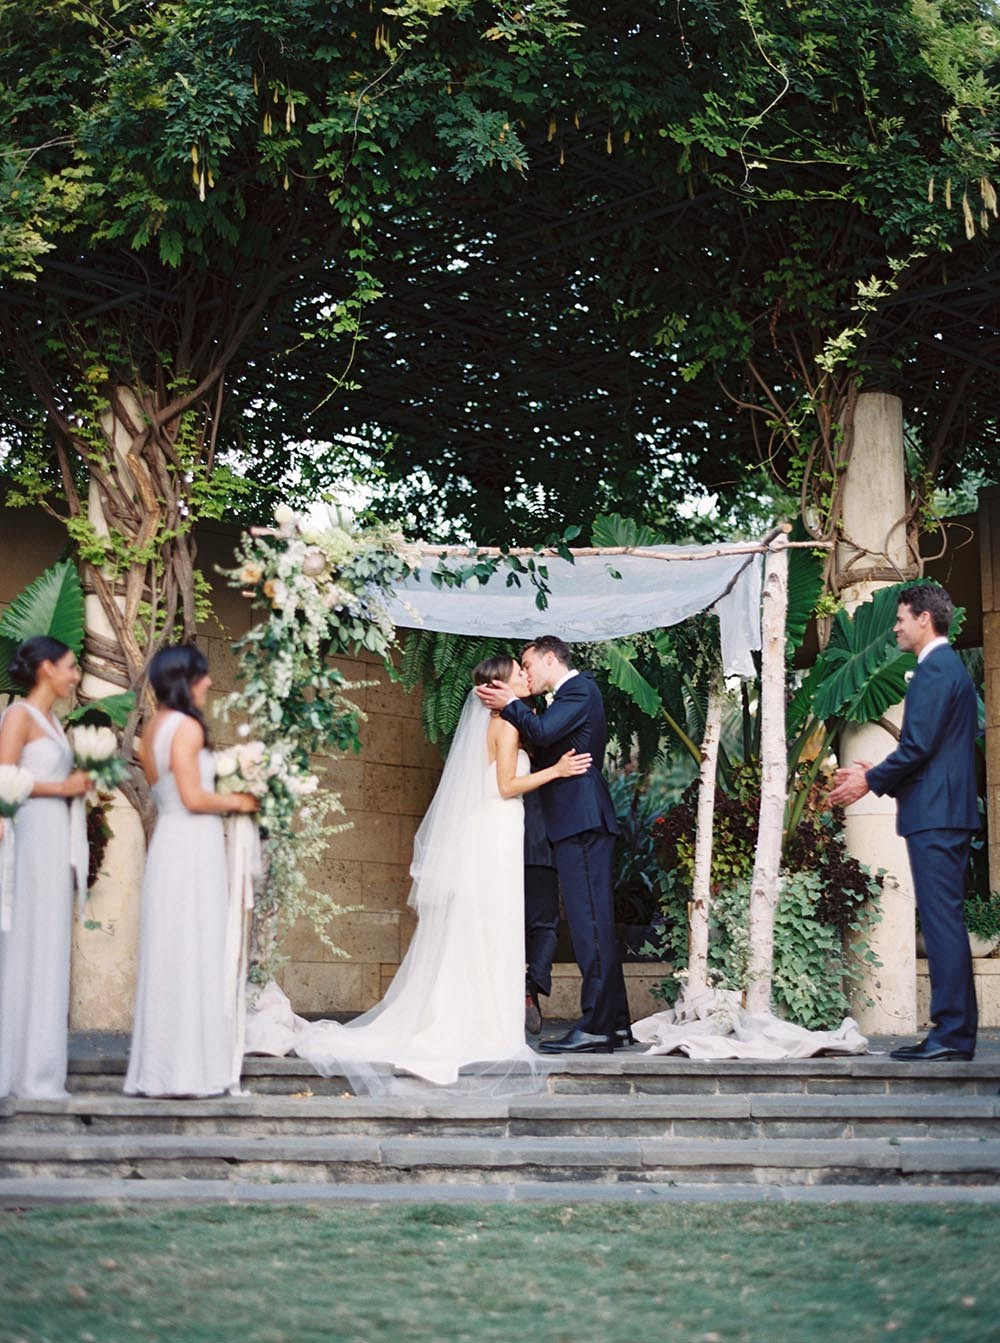 Elizabeth and Nate's Outdoor Southern Wedding